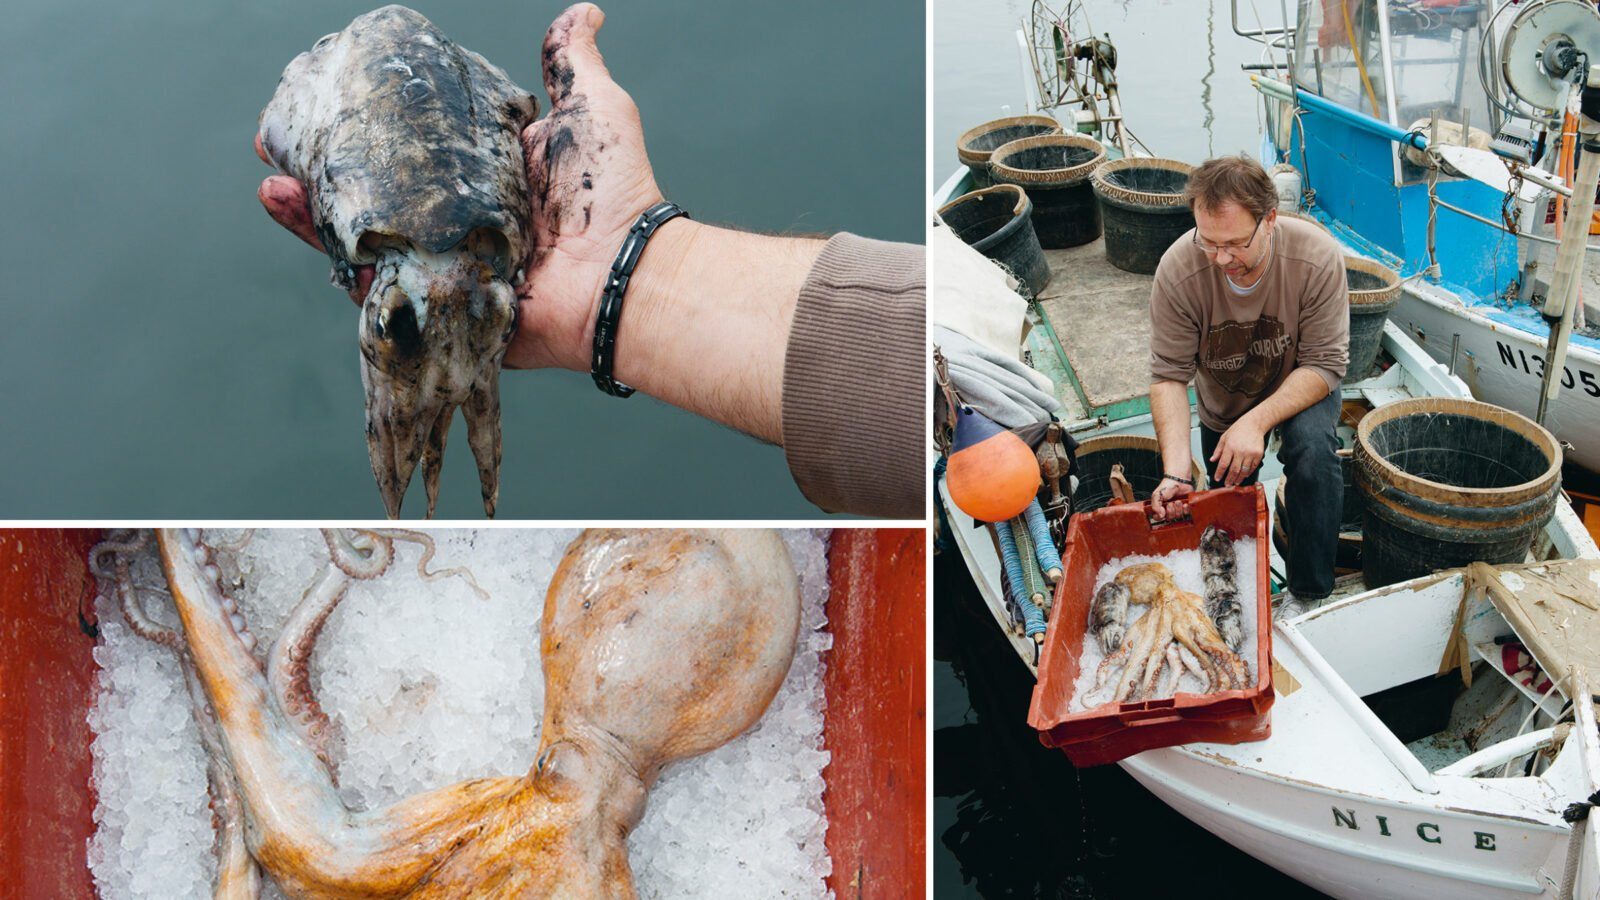 This image shows our fish producers at Hôtel Plaza Athénée